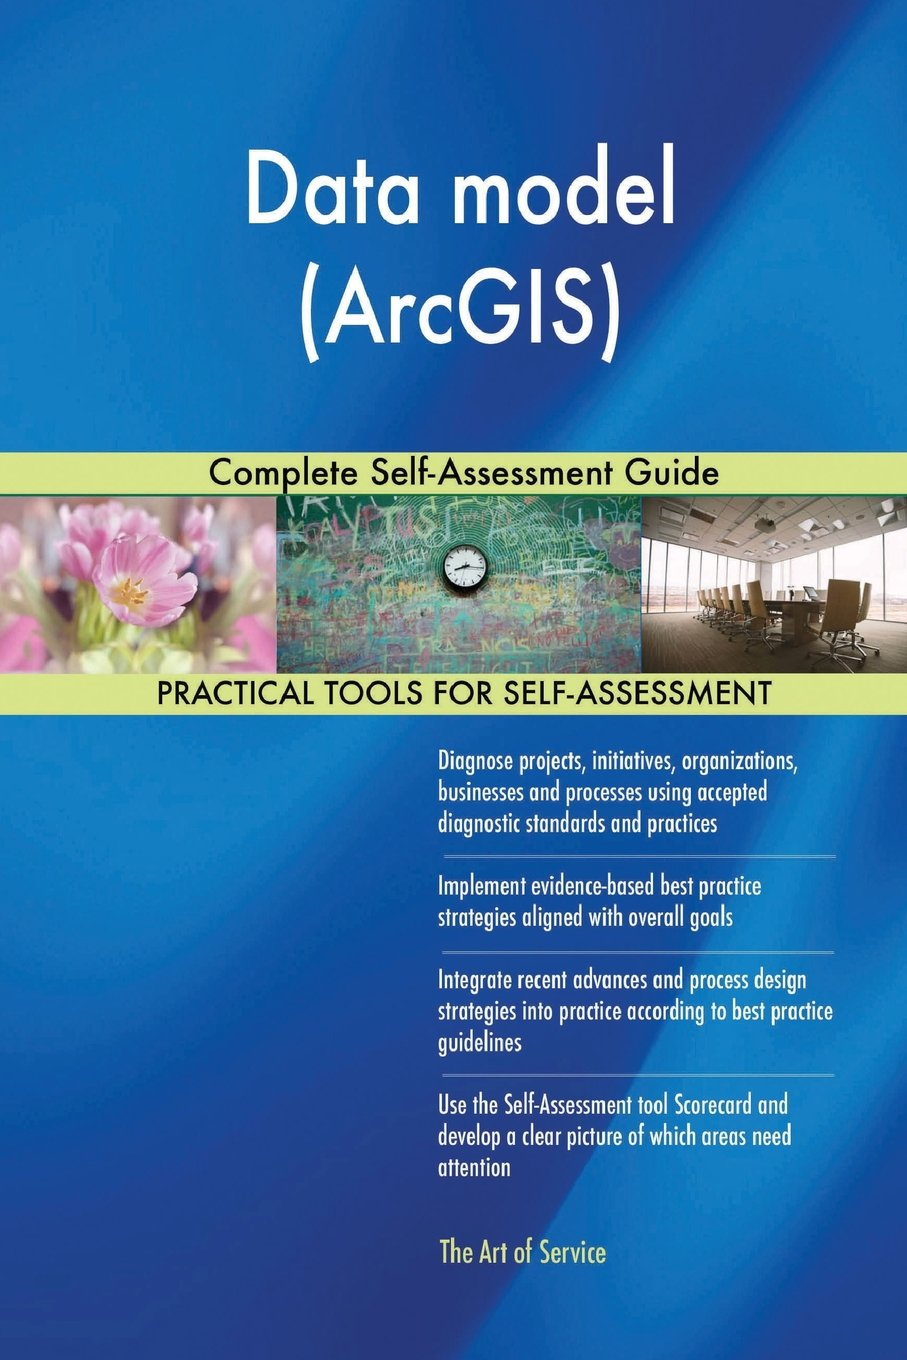 Data model (ArcGIS): Complete Self-Assessment Guide